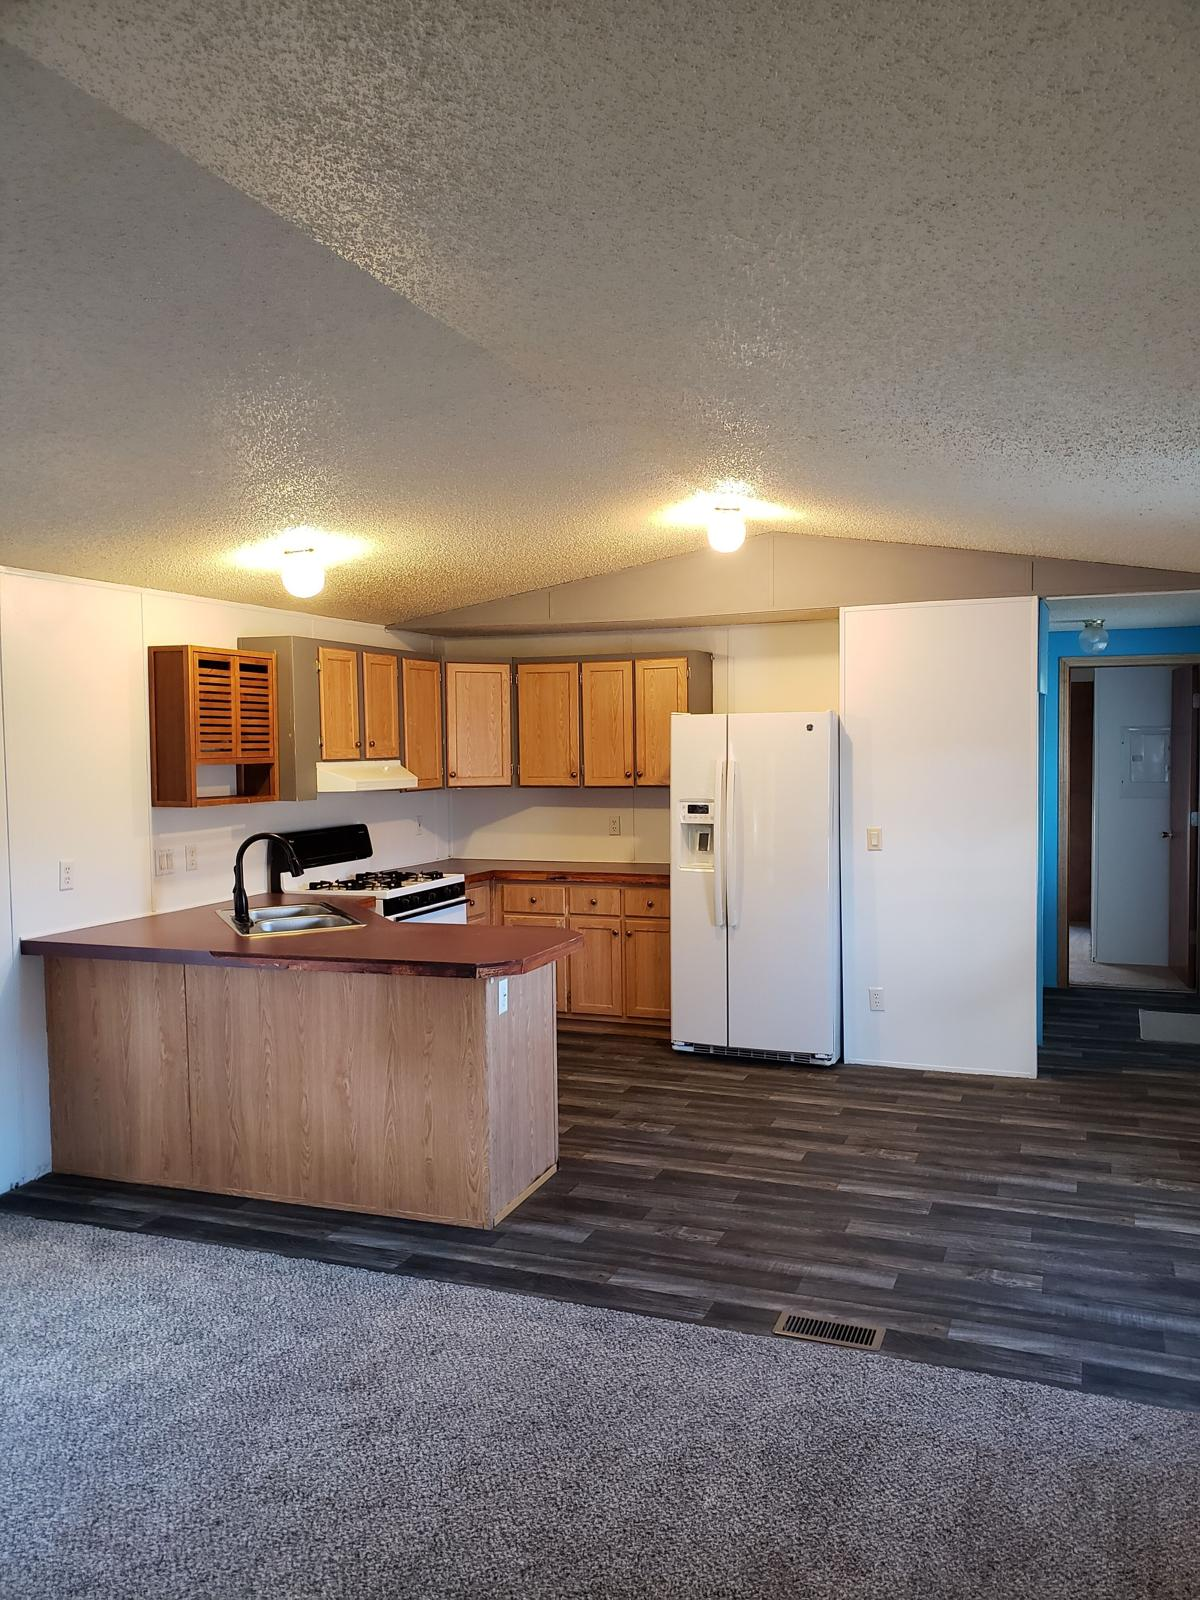 Two Bedroom Two Bath Mobile Home for rent washer dryer pets negotiable image 1